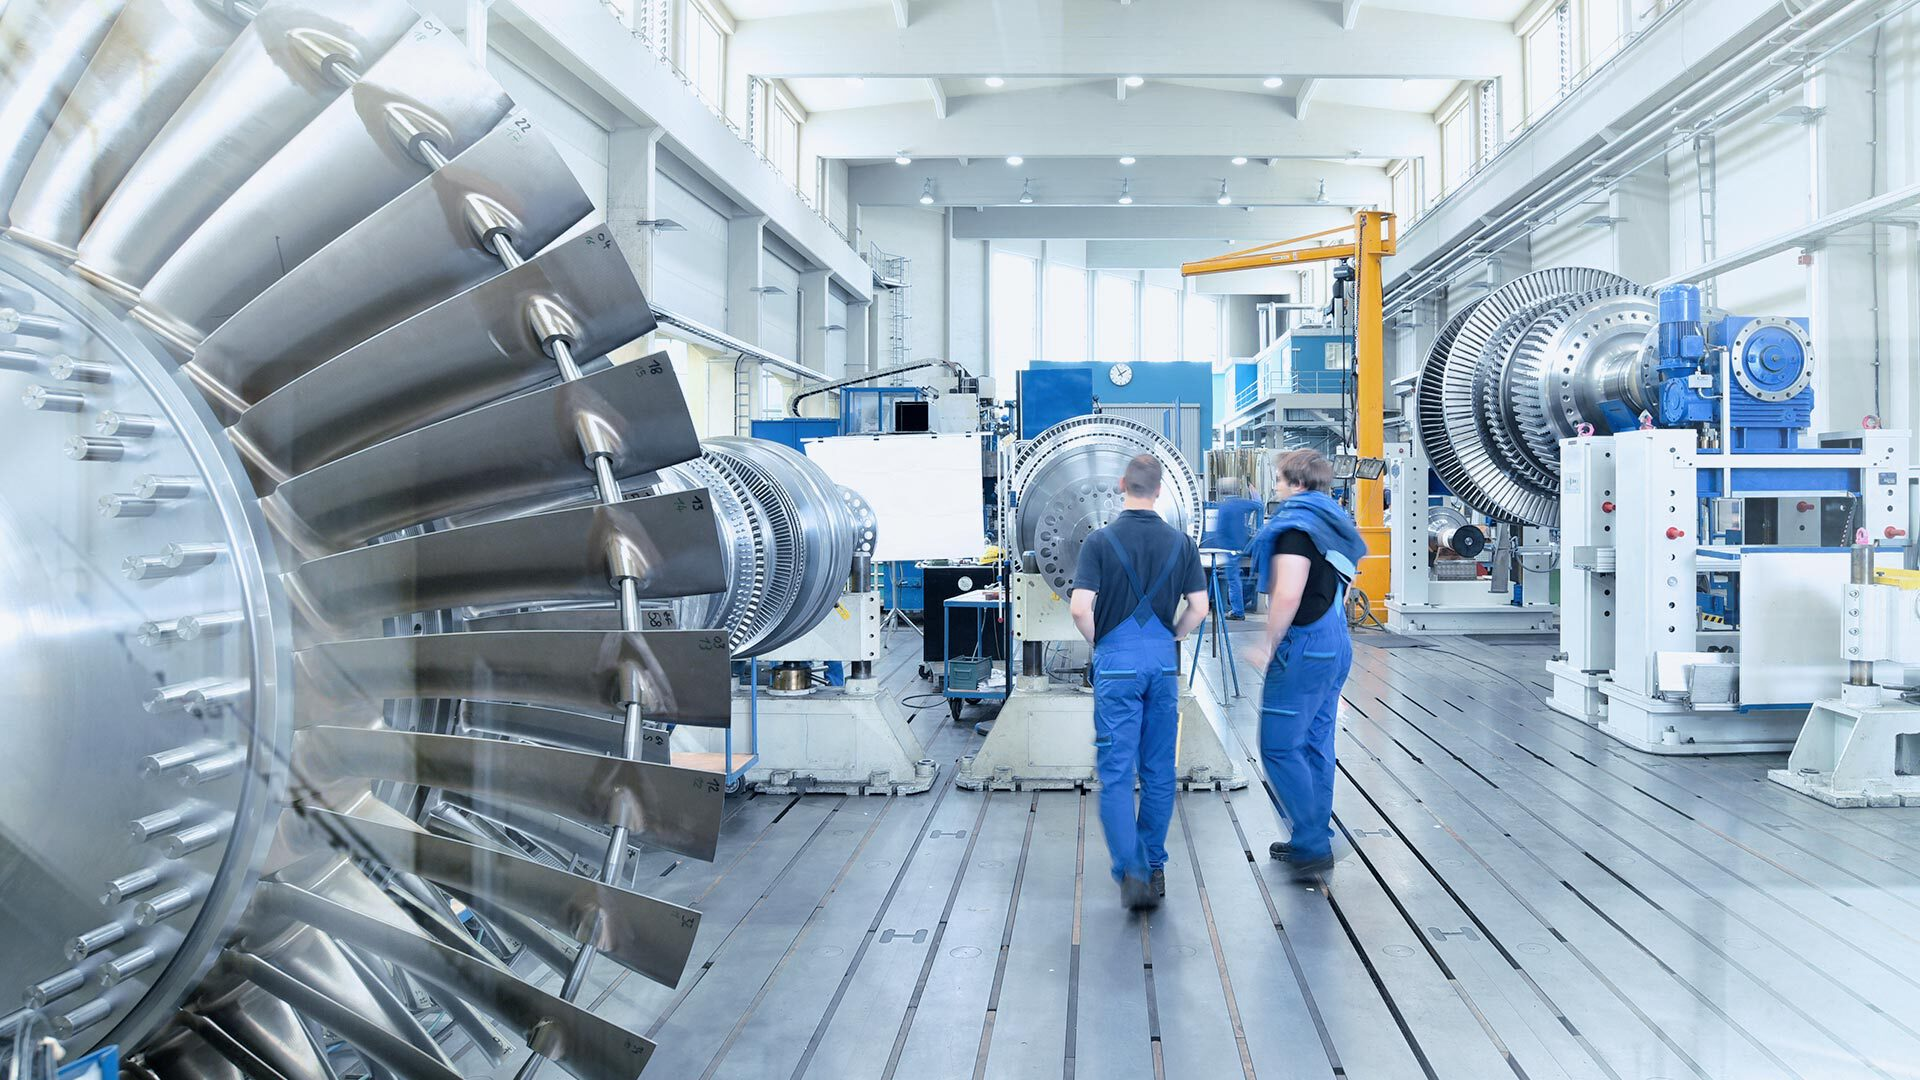 two engineers are walking through an industrial hall with machinery